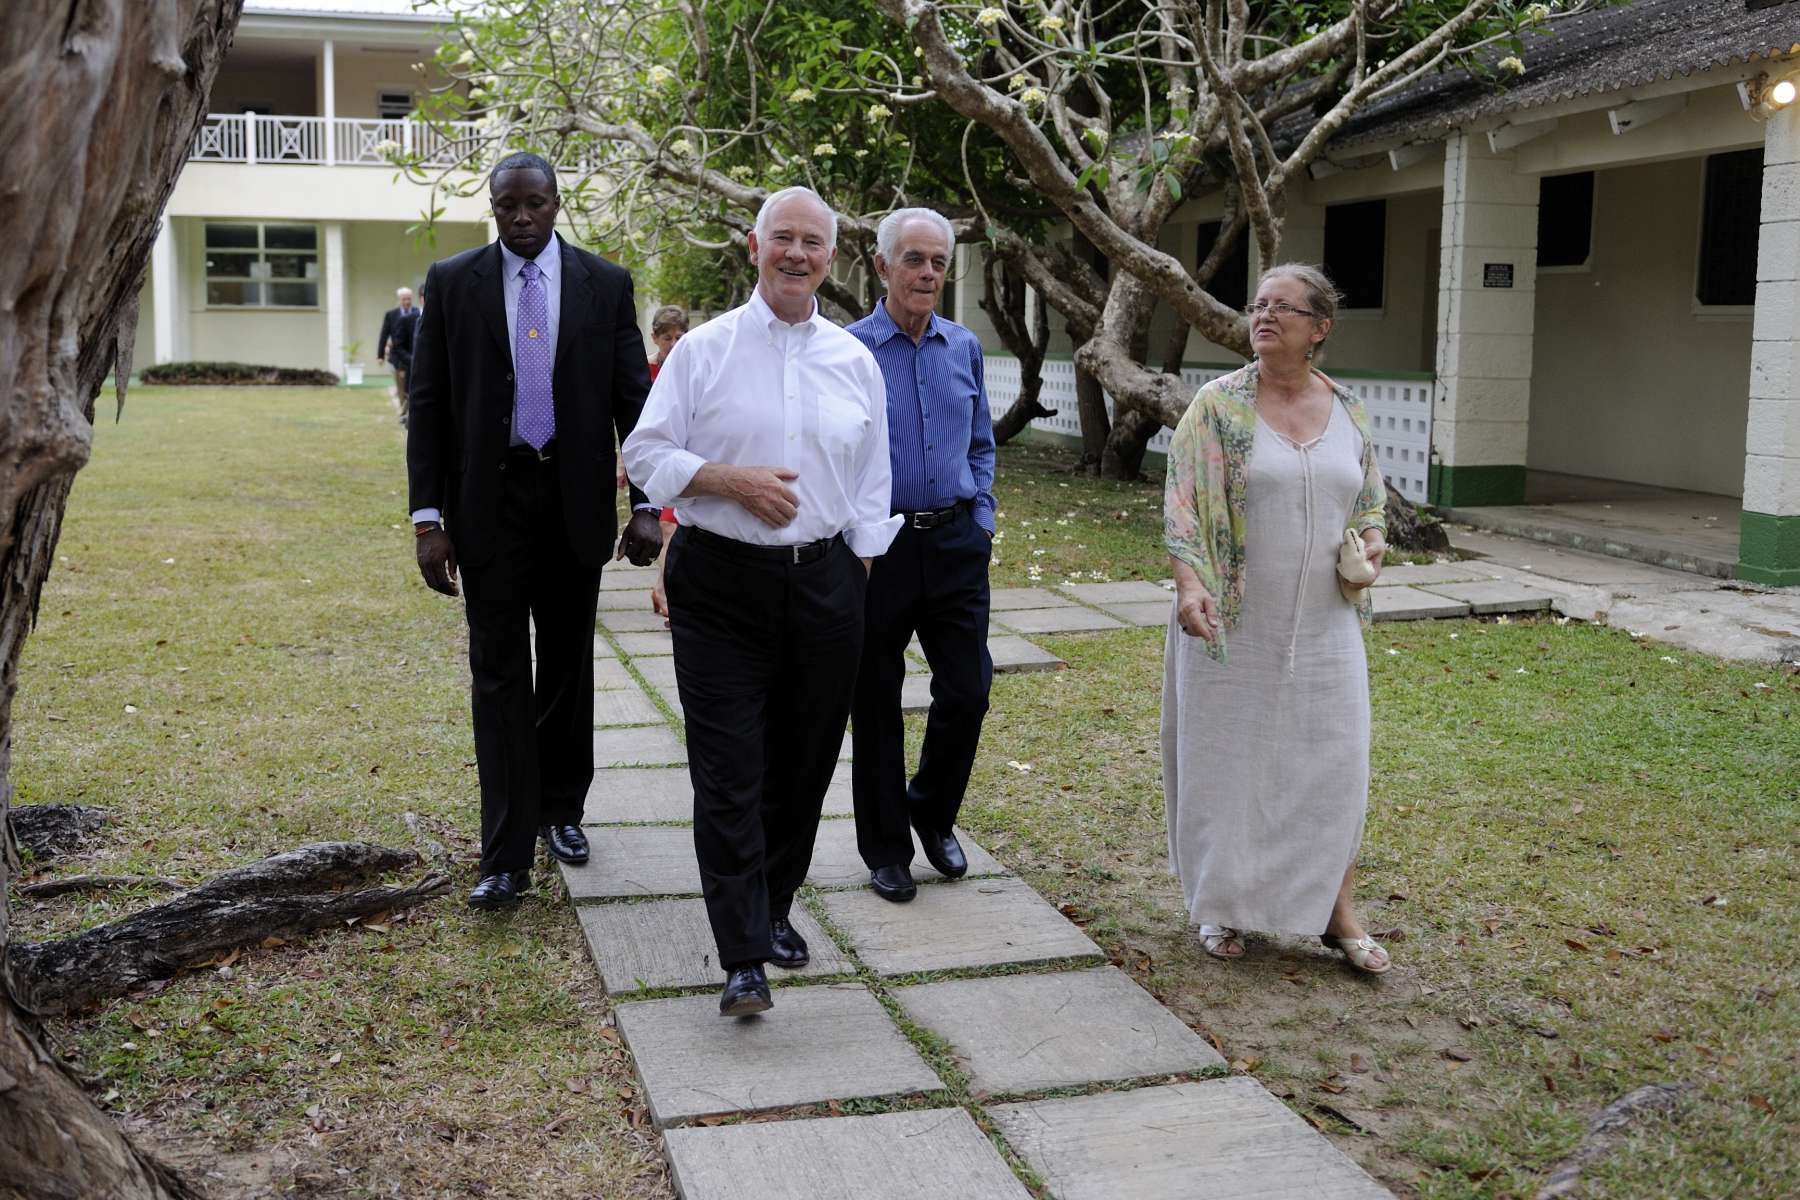 Their Excellencies and the Canadian delegation toured the Bellairs Research Institute, a teaching and research facility connected to McGill University. The Governor General is seen here accompanied by Frank McConney, Chairman of the Board of the institute, and Ms. Susan Mahon, Director of Bellairs Research Institute of McGill University.